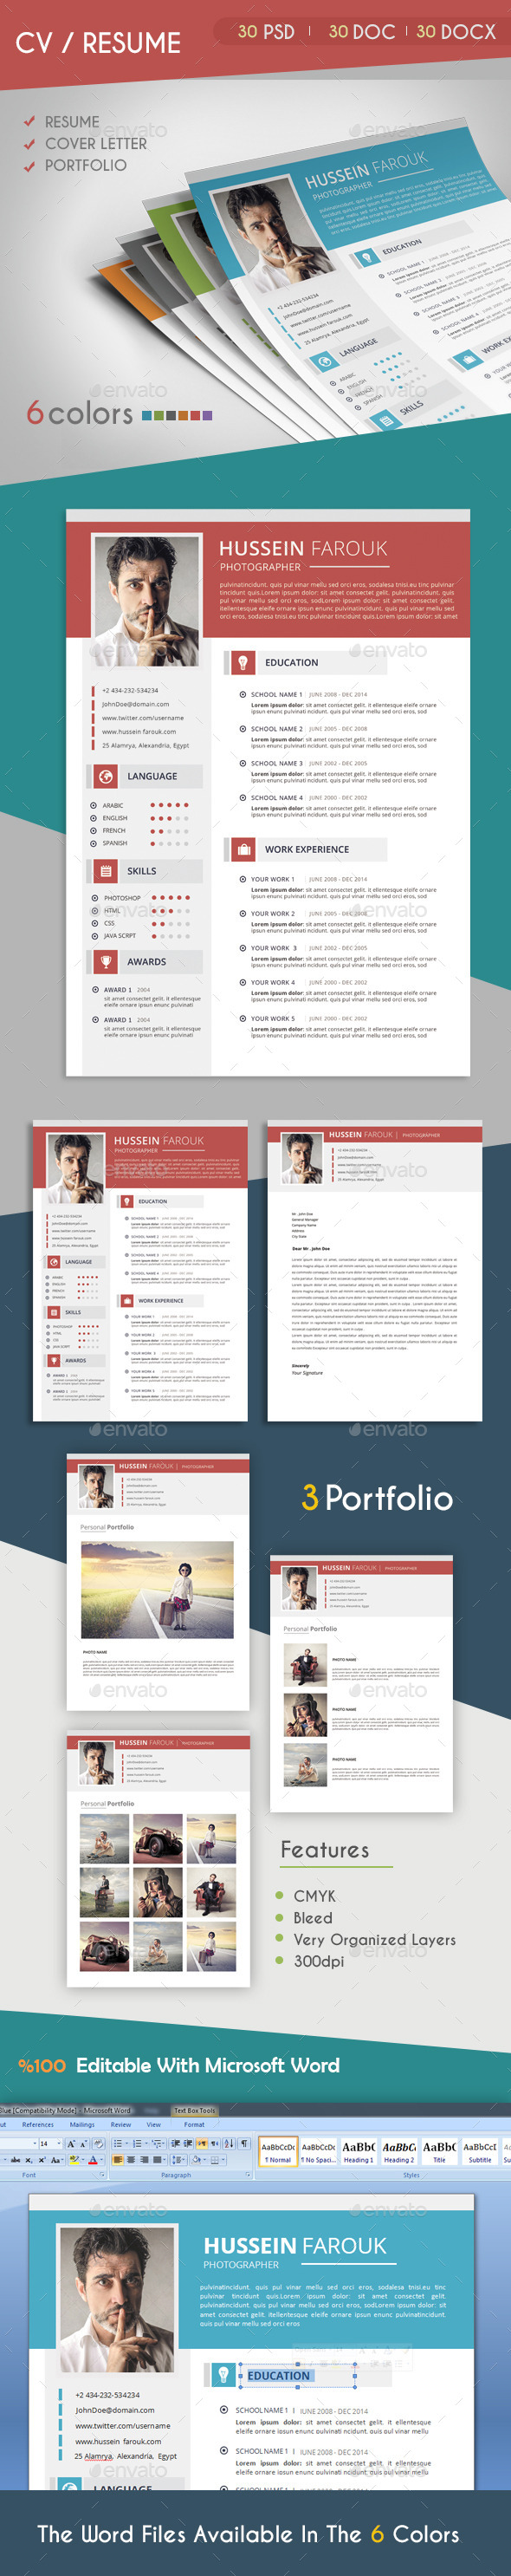 GraphicRiver CV Resume 2 9203604